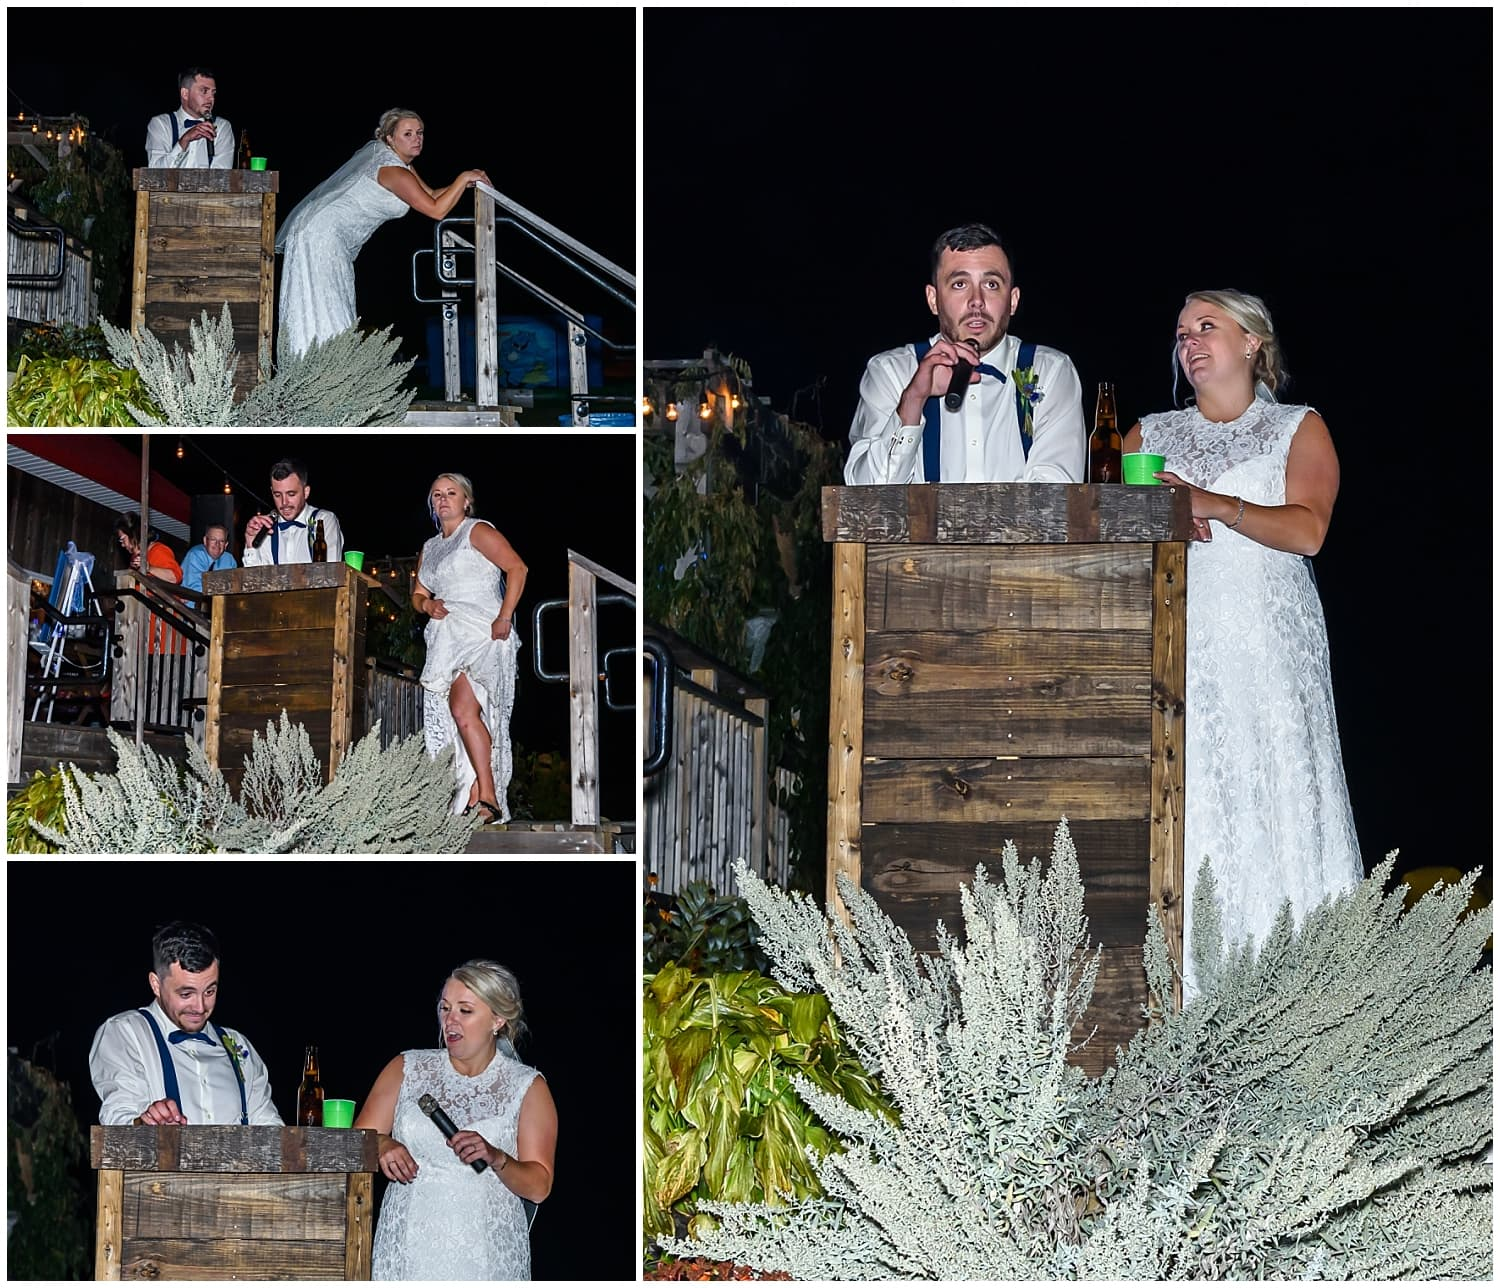 The bride and groom give their thank you speech during their wedding at the Barn at Sadie Belle Farm in Hantsport, NS.